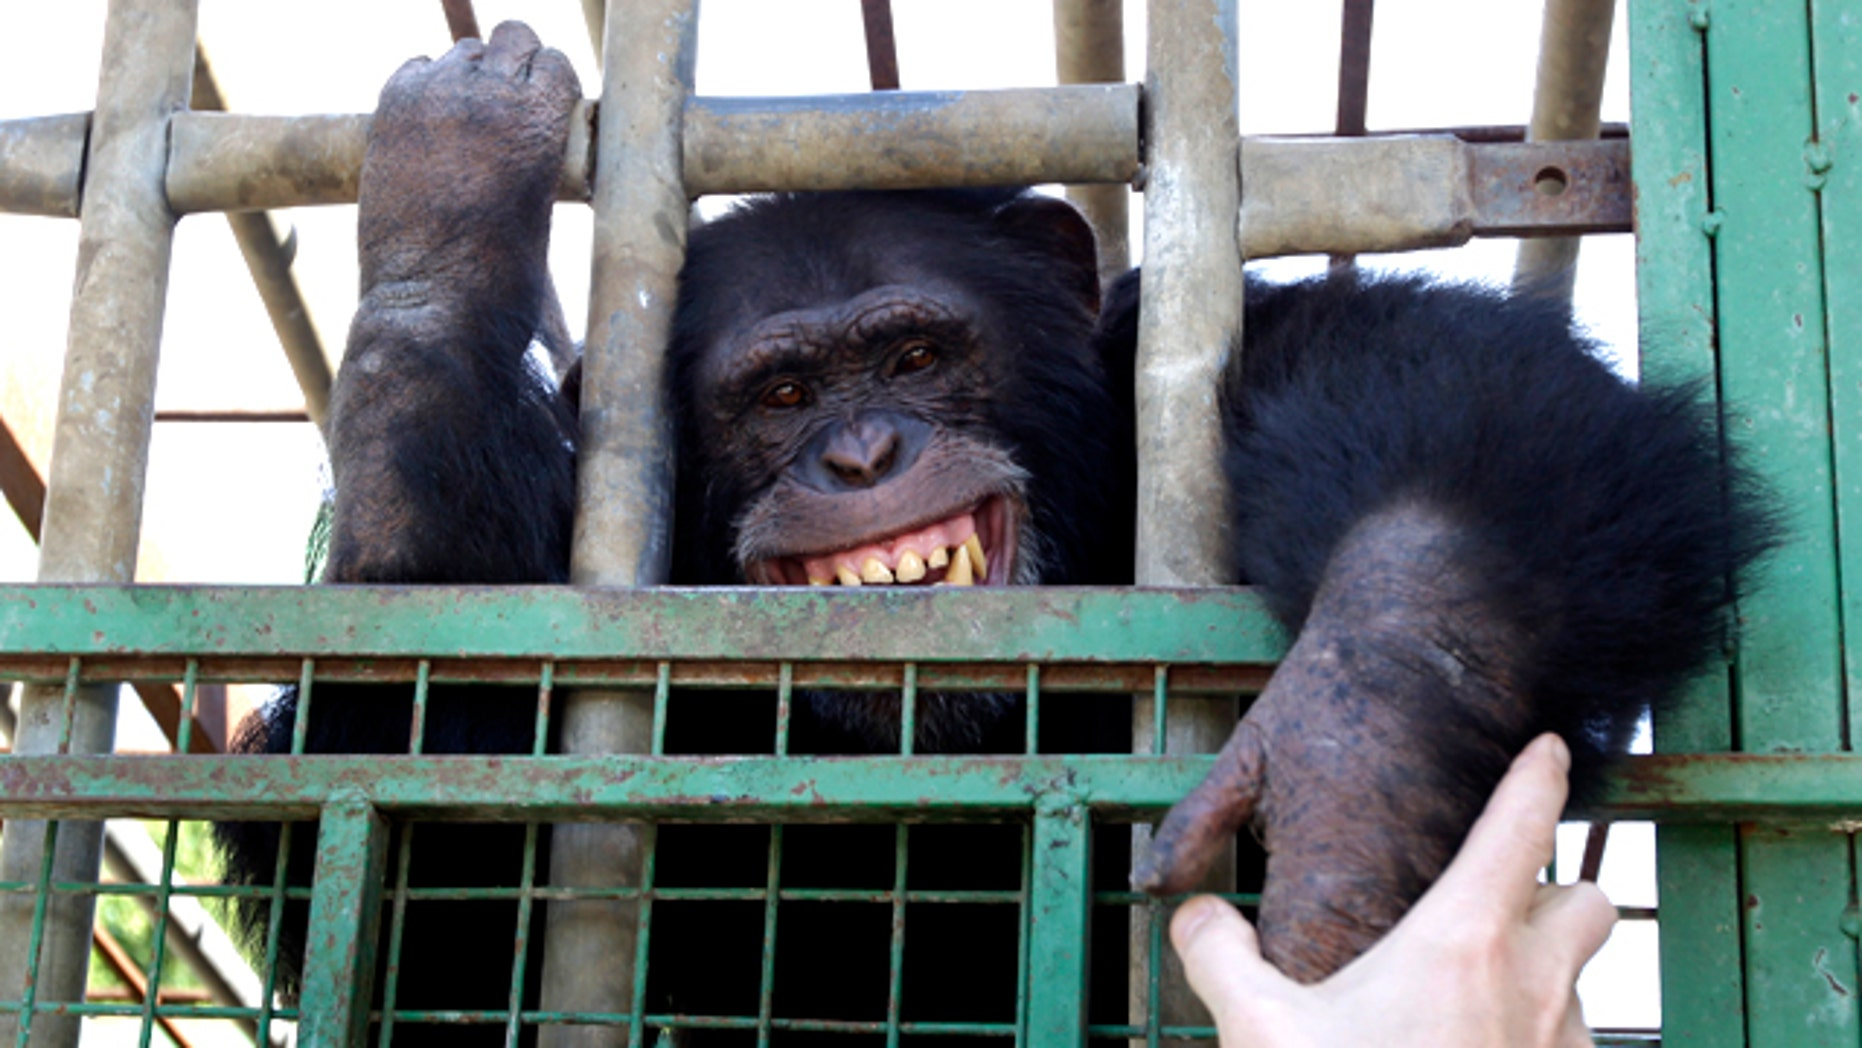 Omega, a 12-year-old chimpanzee, bares his teeth through his cage in a zoo in the southern Lebanese village of Ansar on Monday, Nov. 8, 2010. In his younger years, the chimp was used in one of the local restaurants to entertain people and was made to smoke cigarettes and serve water pipes to customers.